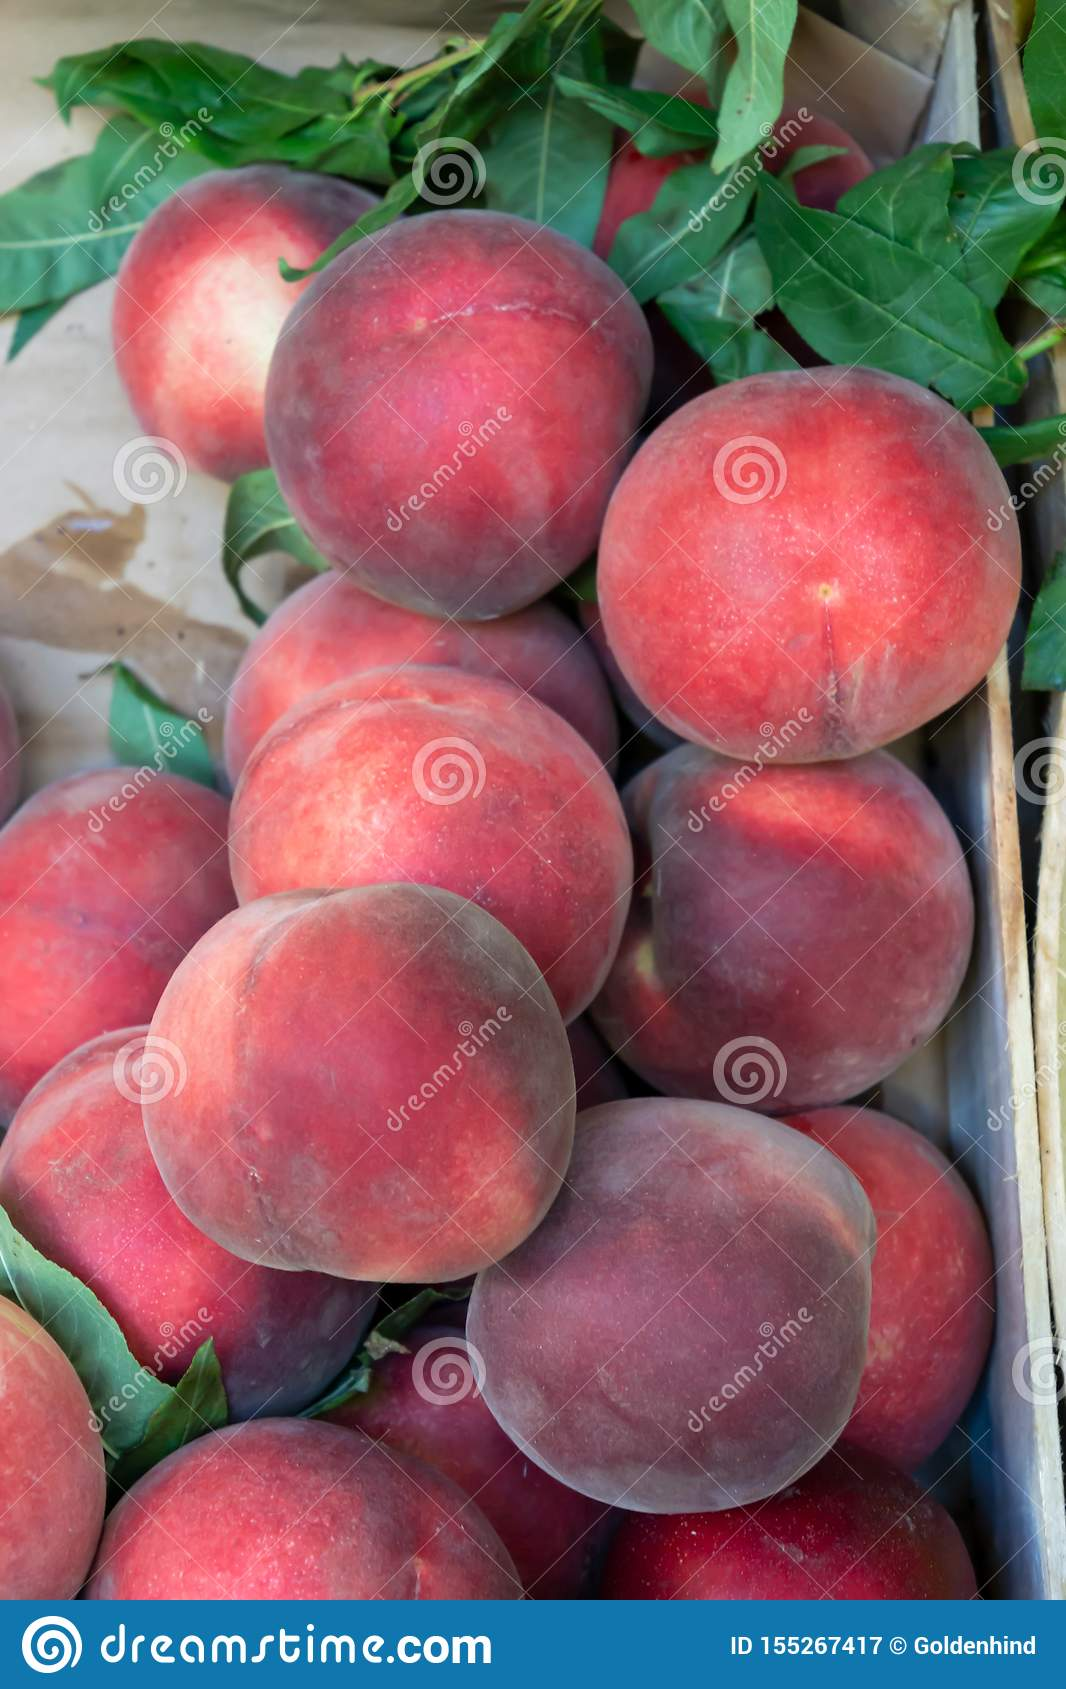 Texture background of fresh organic sweet red ripe peaches at the street market